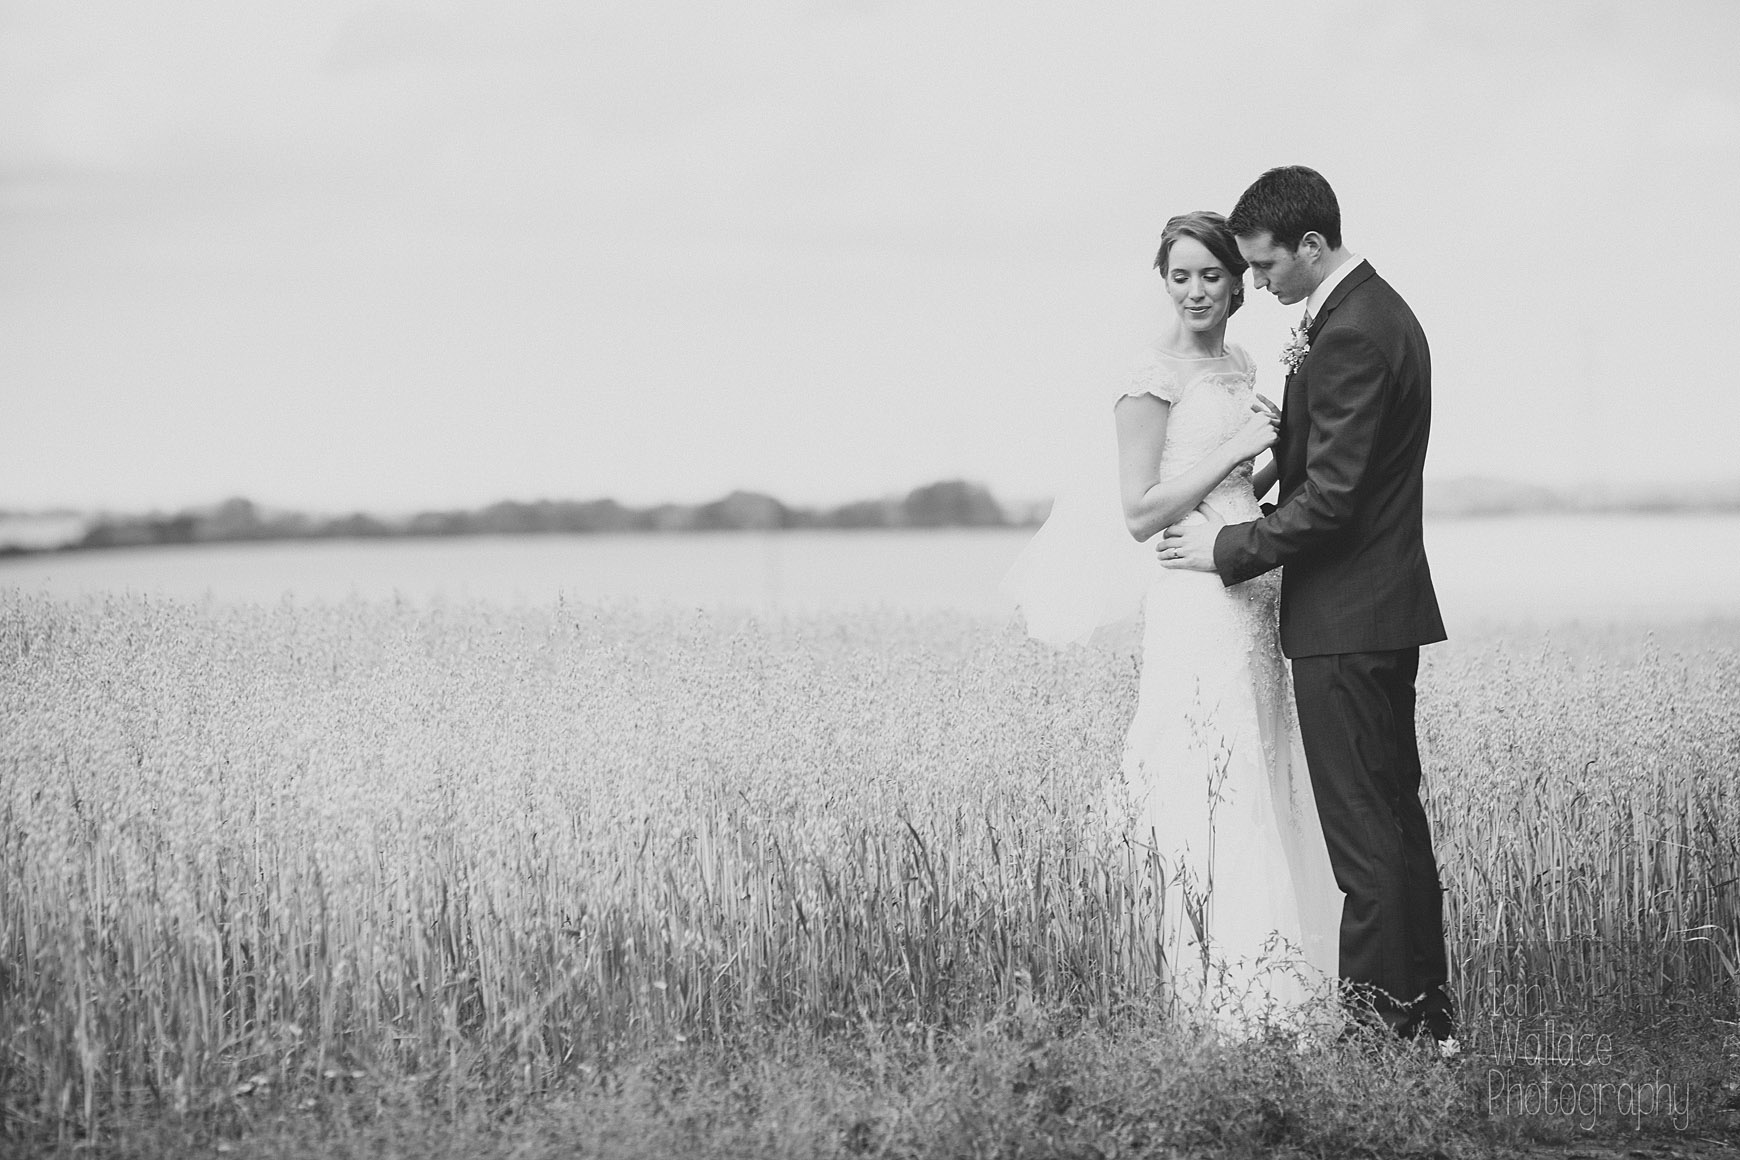 Fine art wedding photography - bride and groom in a corn field